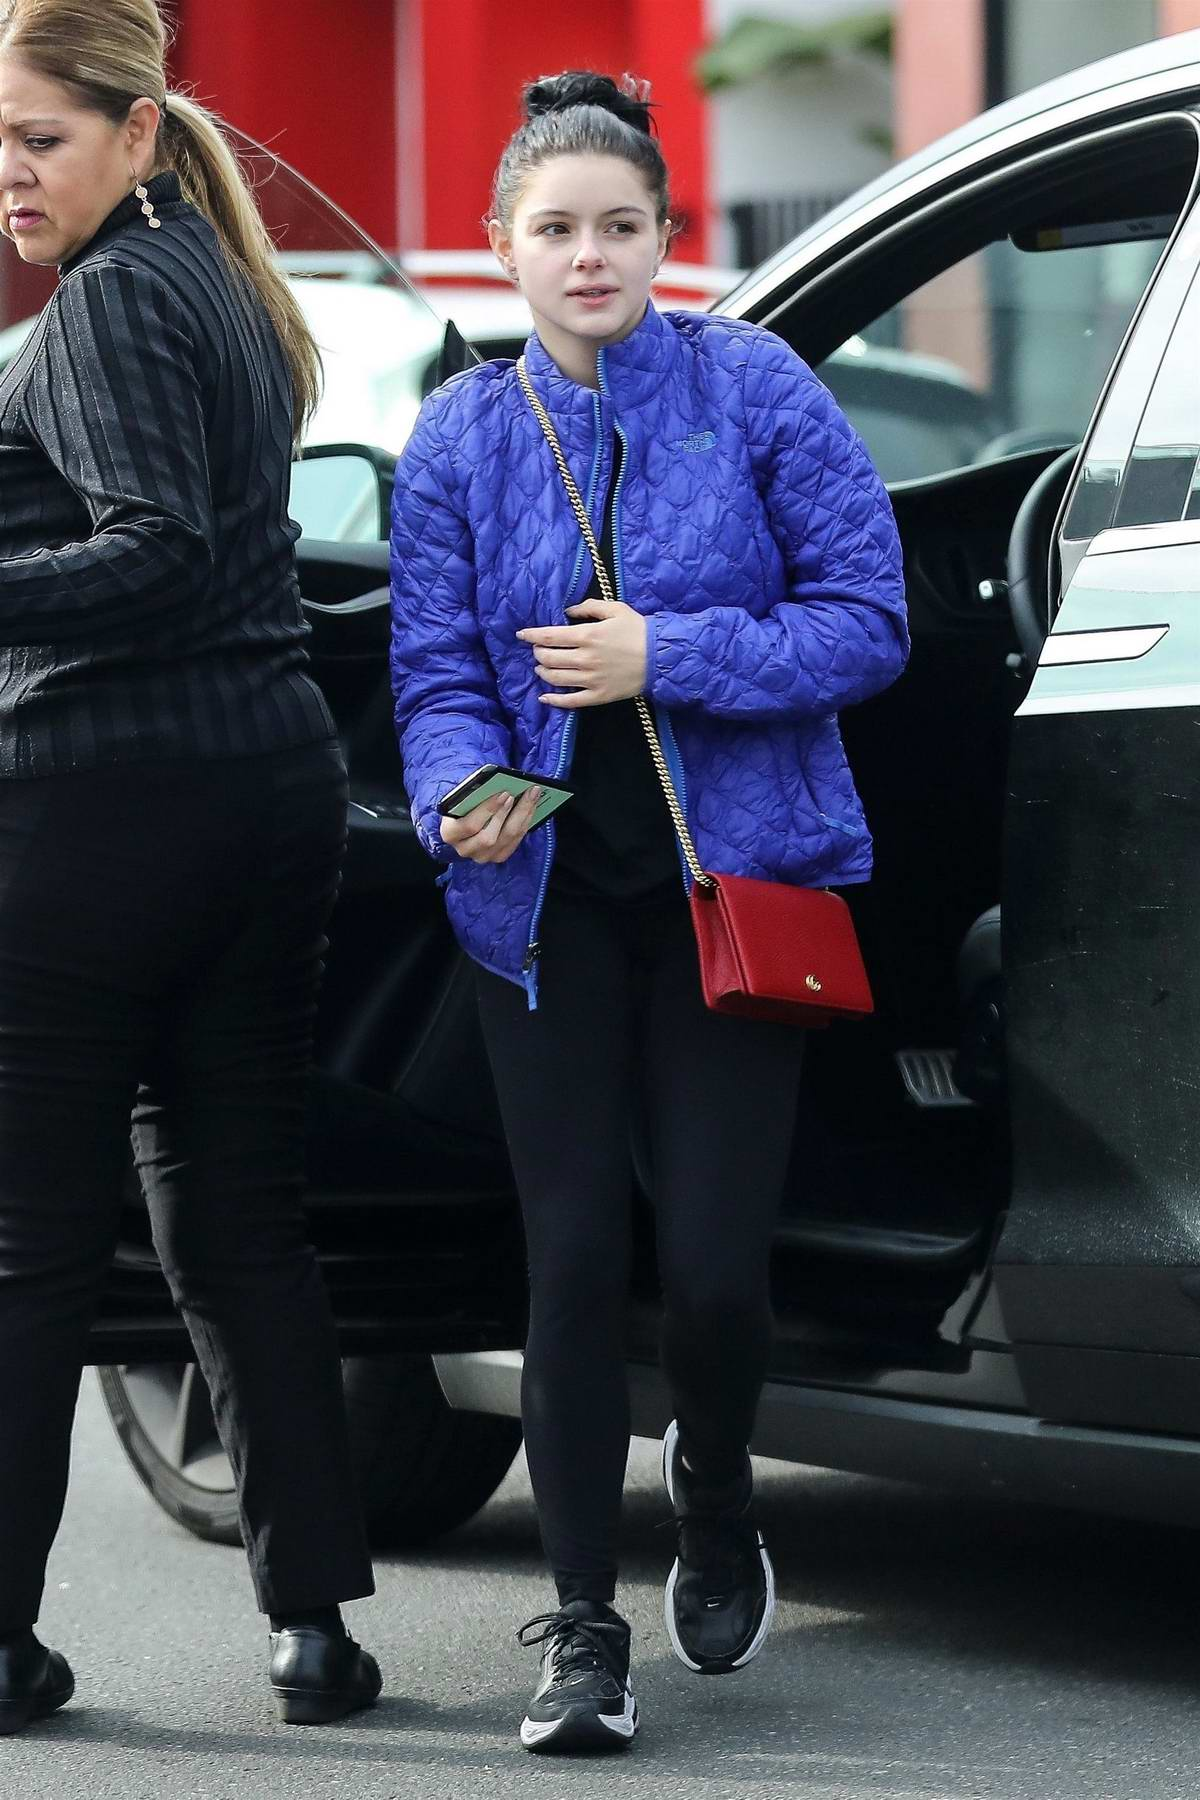 Ariel Winter dons a blue jacket and black leggings as she arrives at a hair salon in West Hollywood, Los Angeles